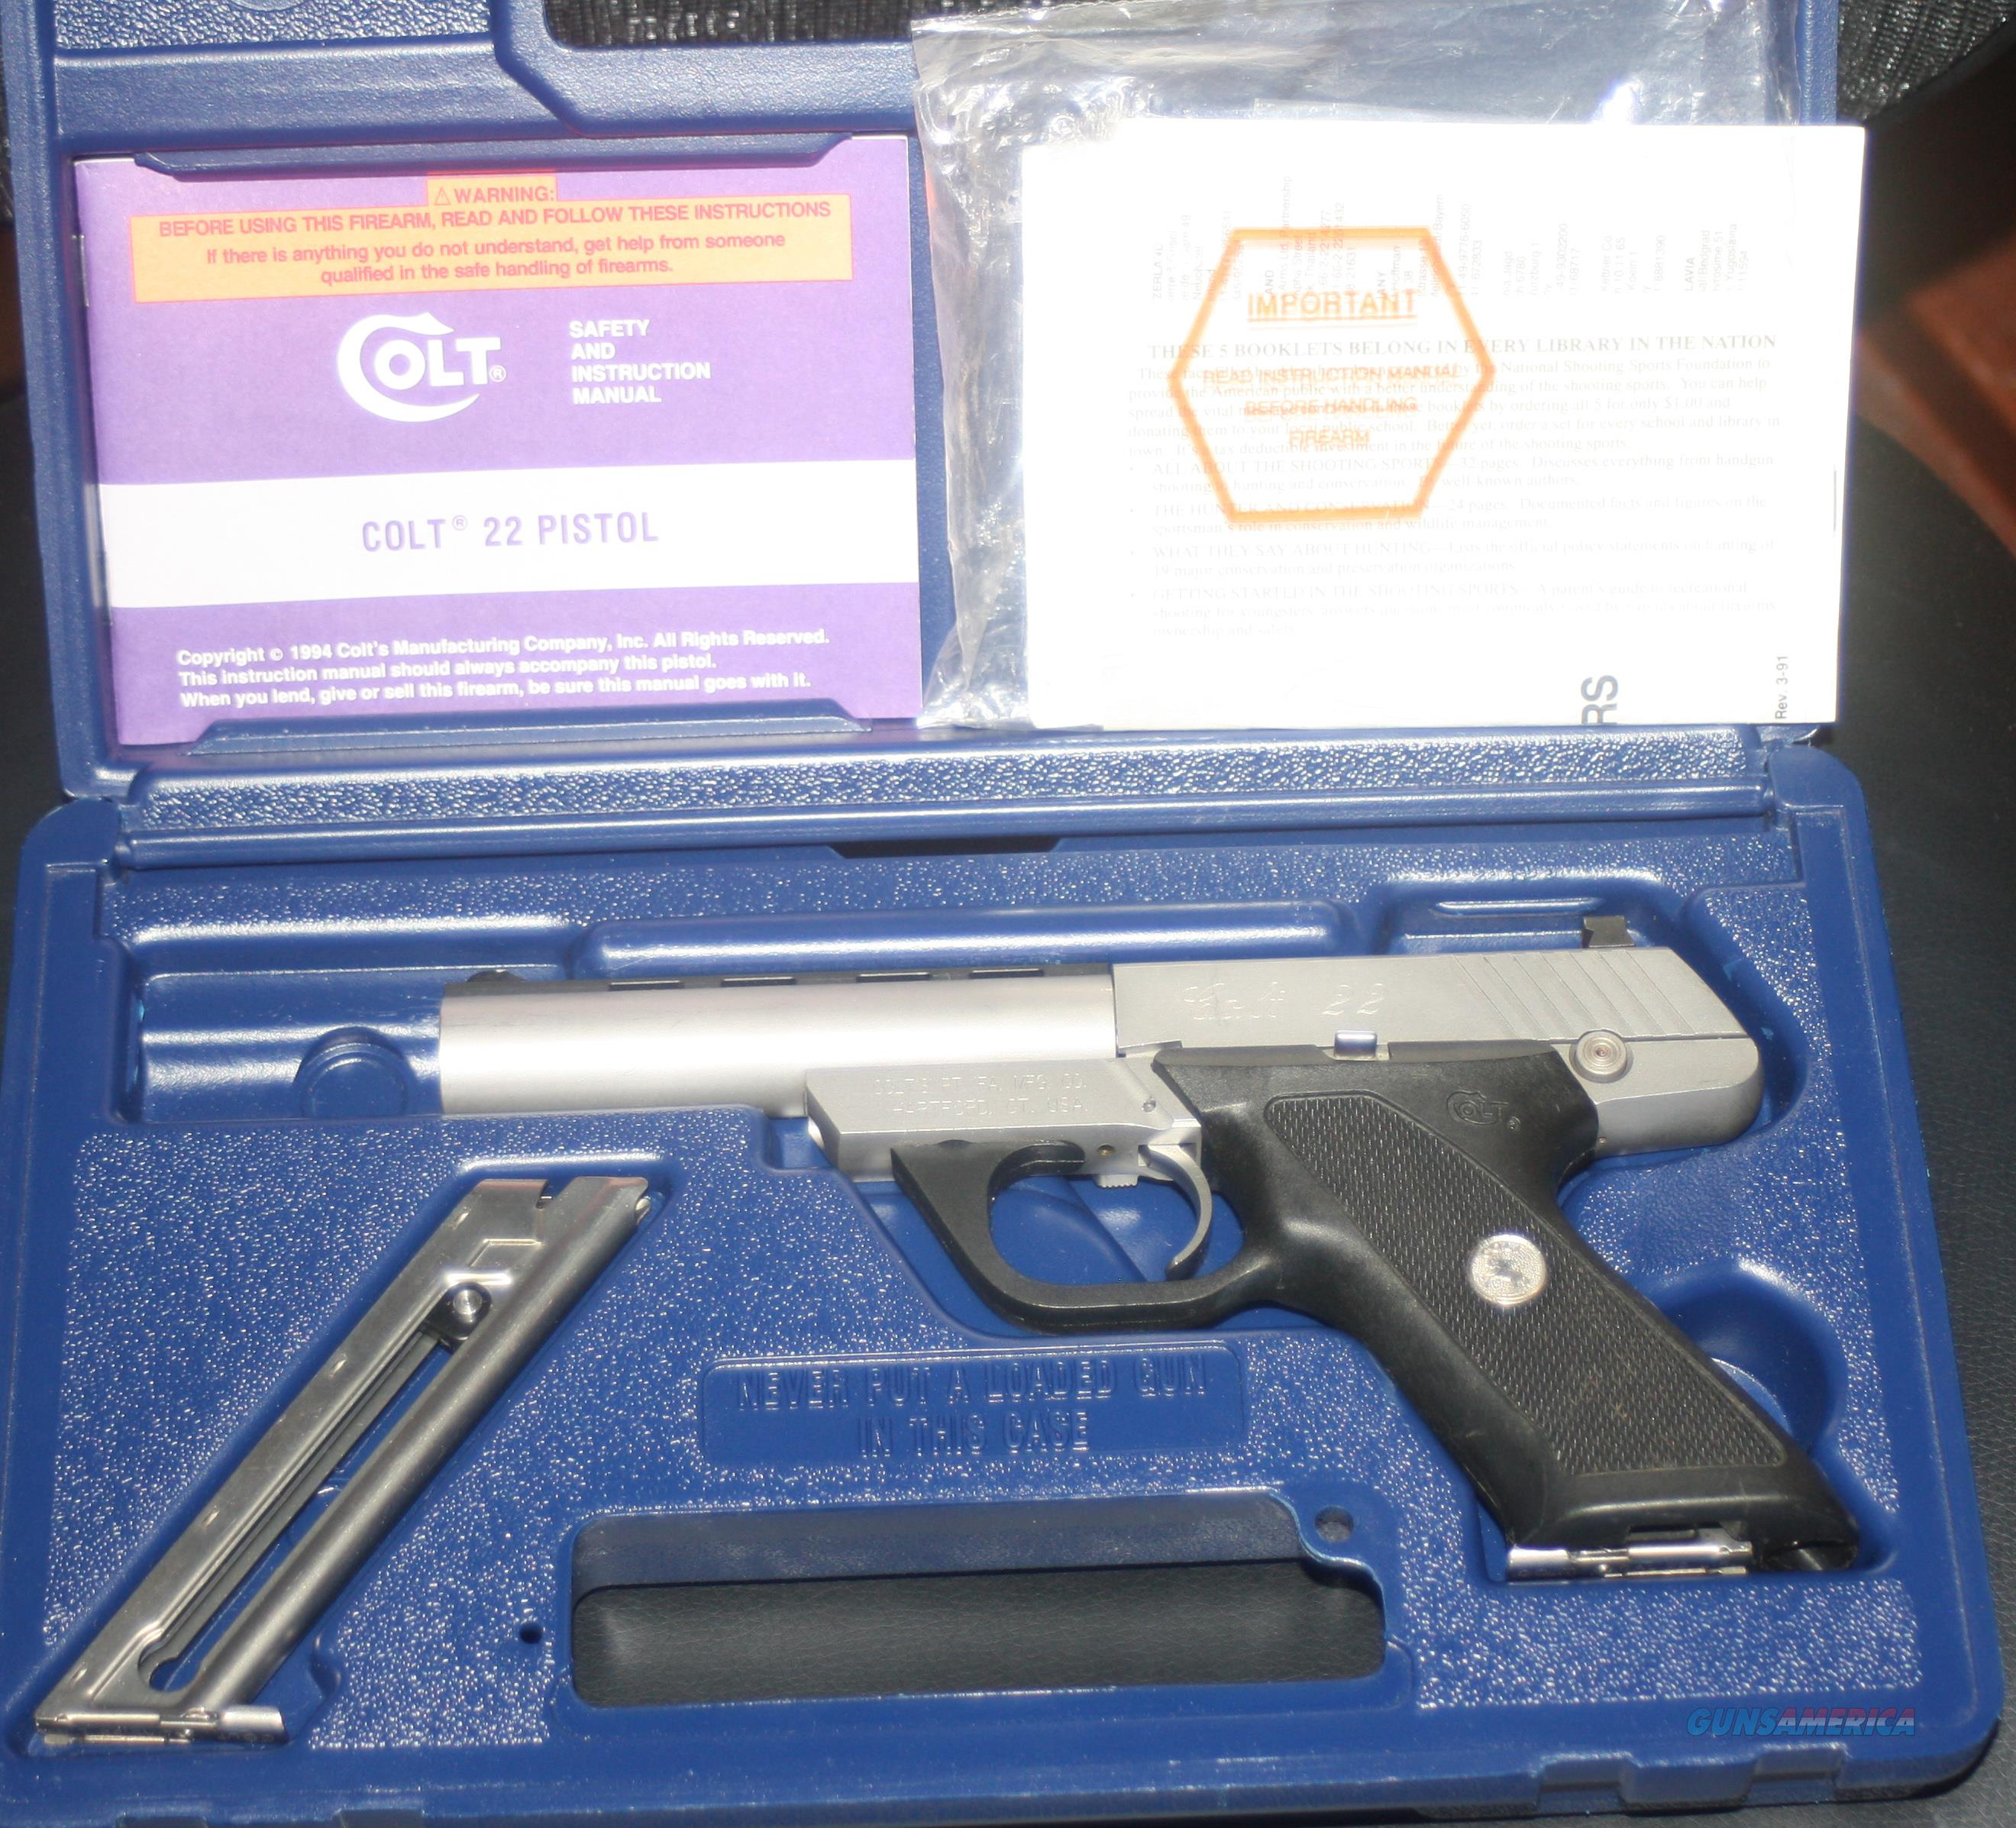 COLT 22 STAINLESS STEEL 22 LR PISTOL IN BOX WITH OWNERS MANUAL  Guns > Pistols > Colt Automatic Pistols (22 Cal.)